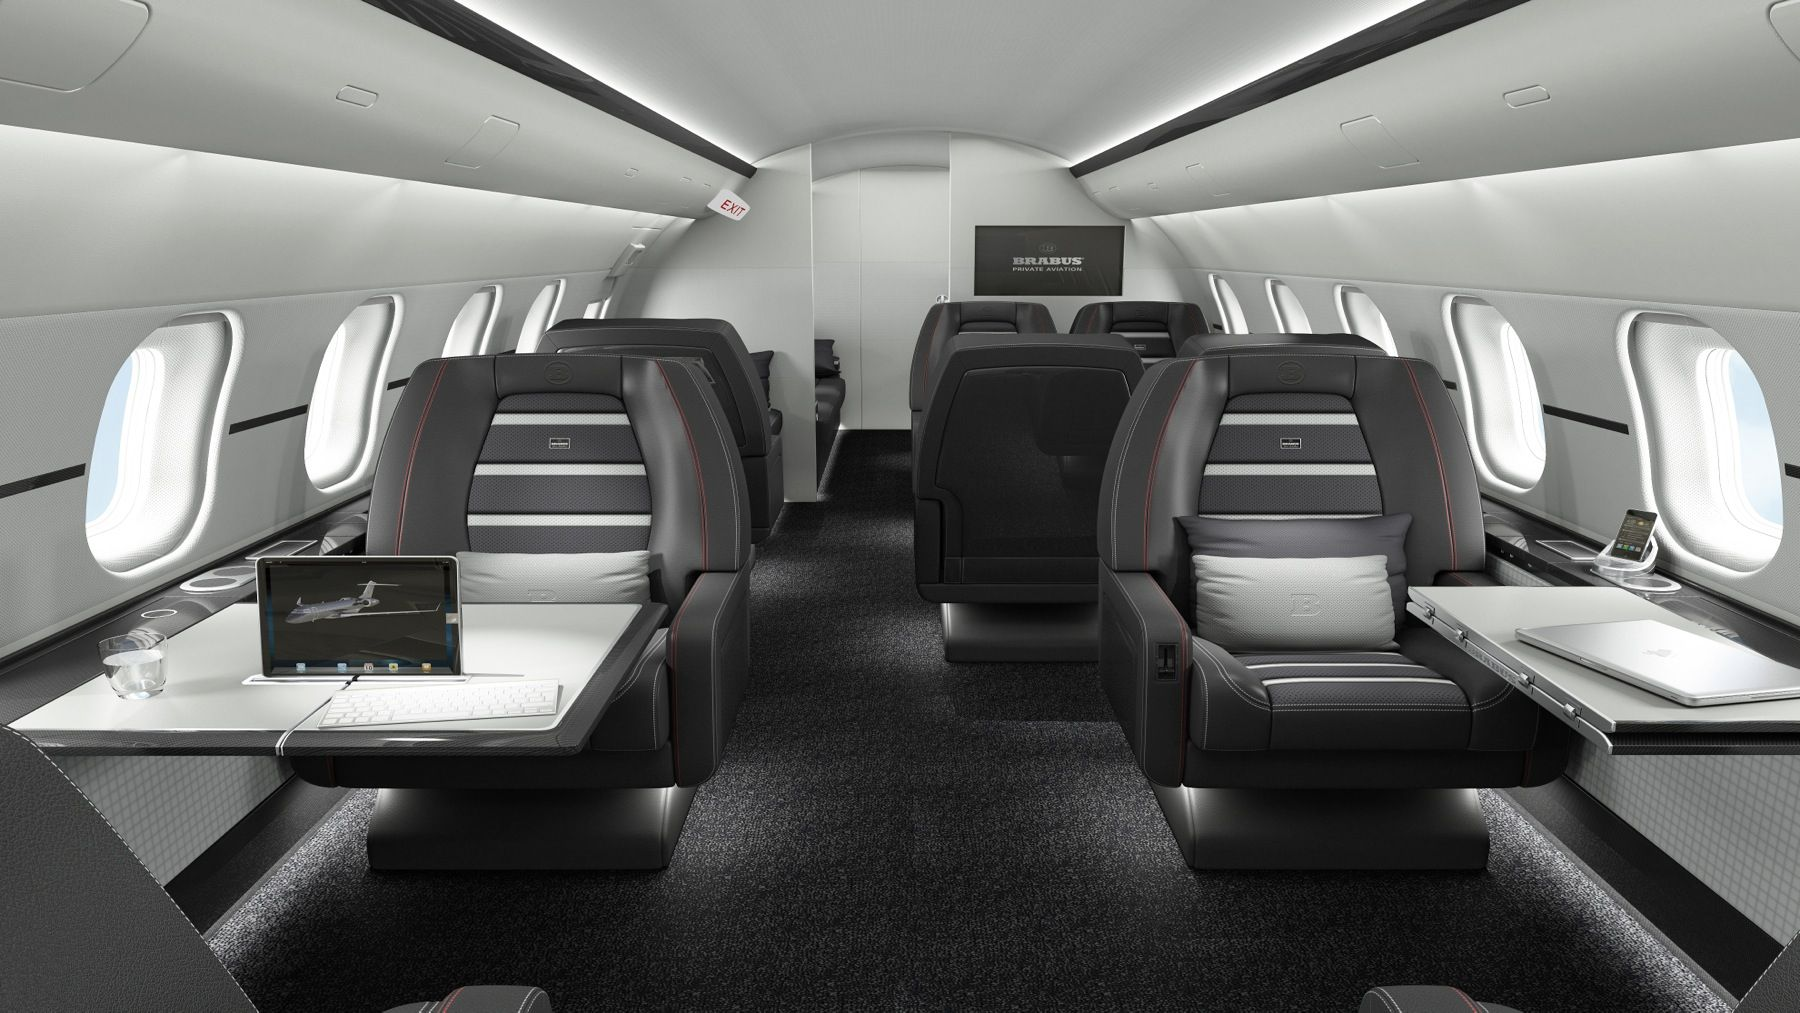 Brabus Aviation German Design Studio Brabus Private Aviation An Offshoot Of The Long